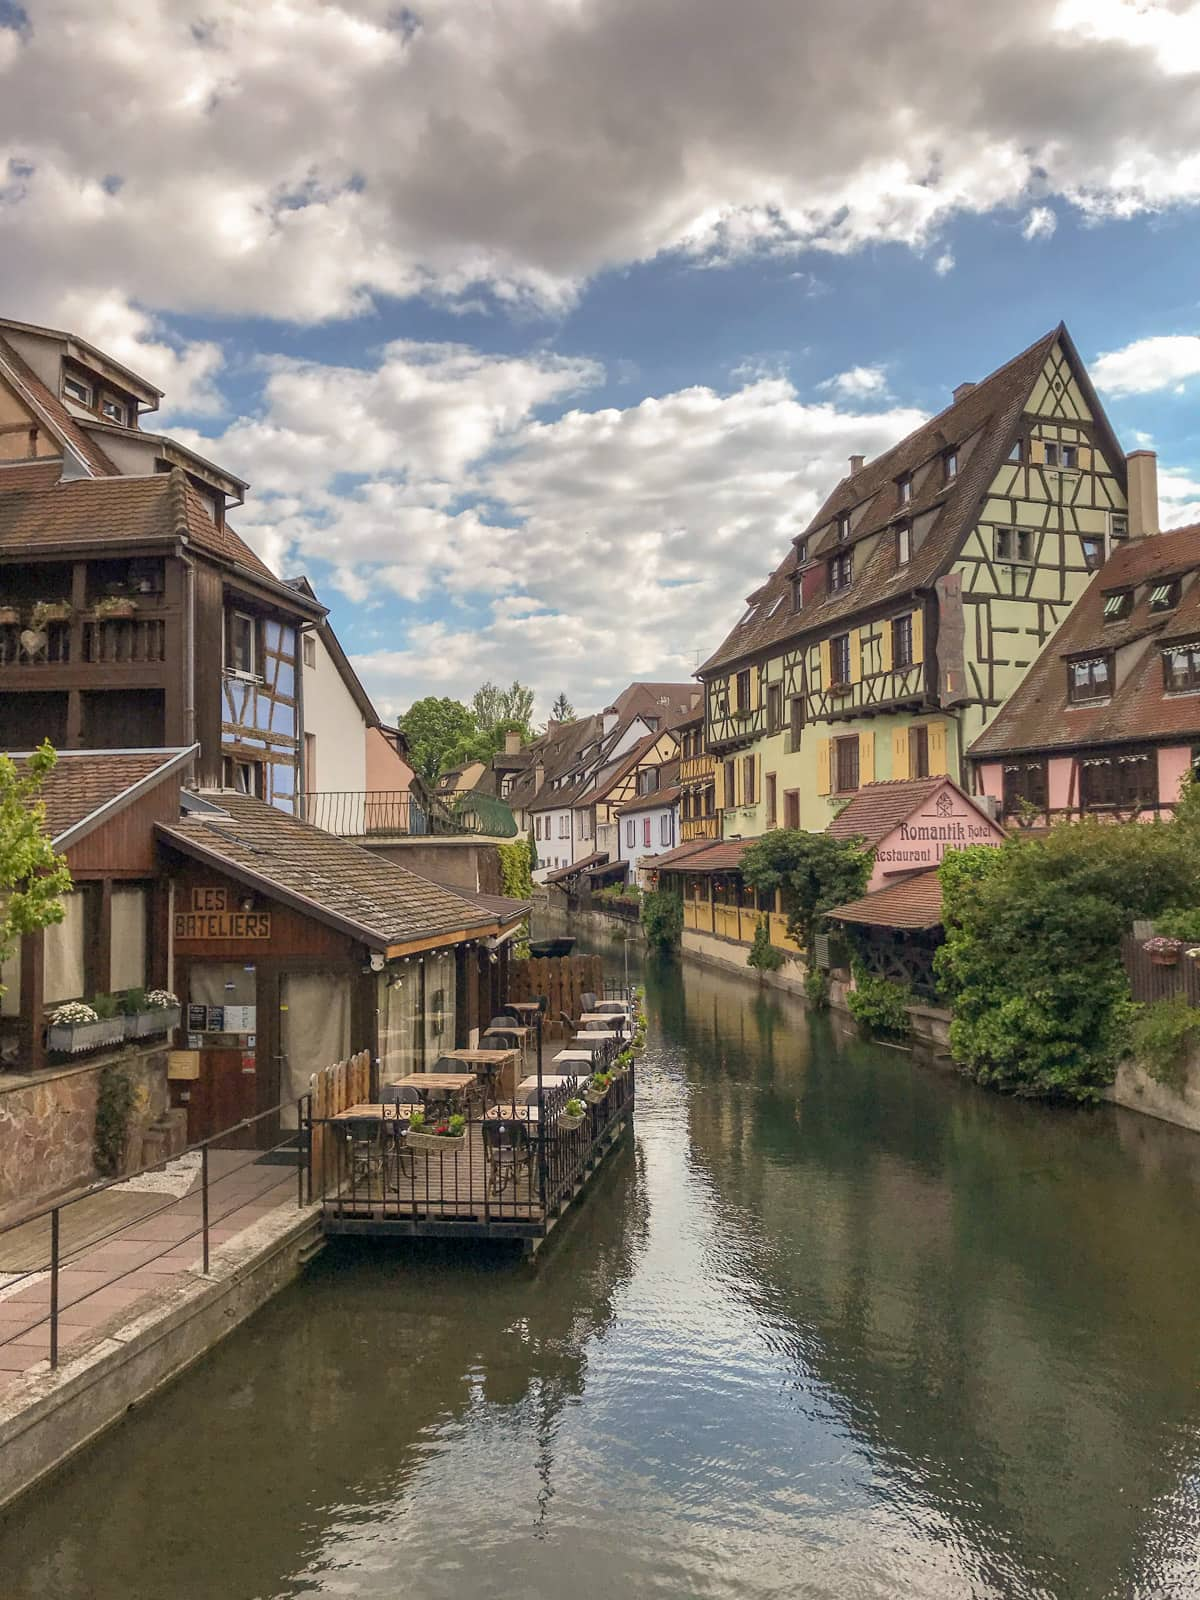 A view of a river going between two banks where old, colourful houses are erected, in the city of Colmar, France